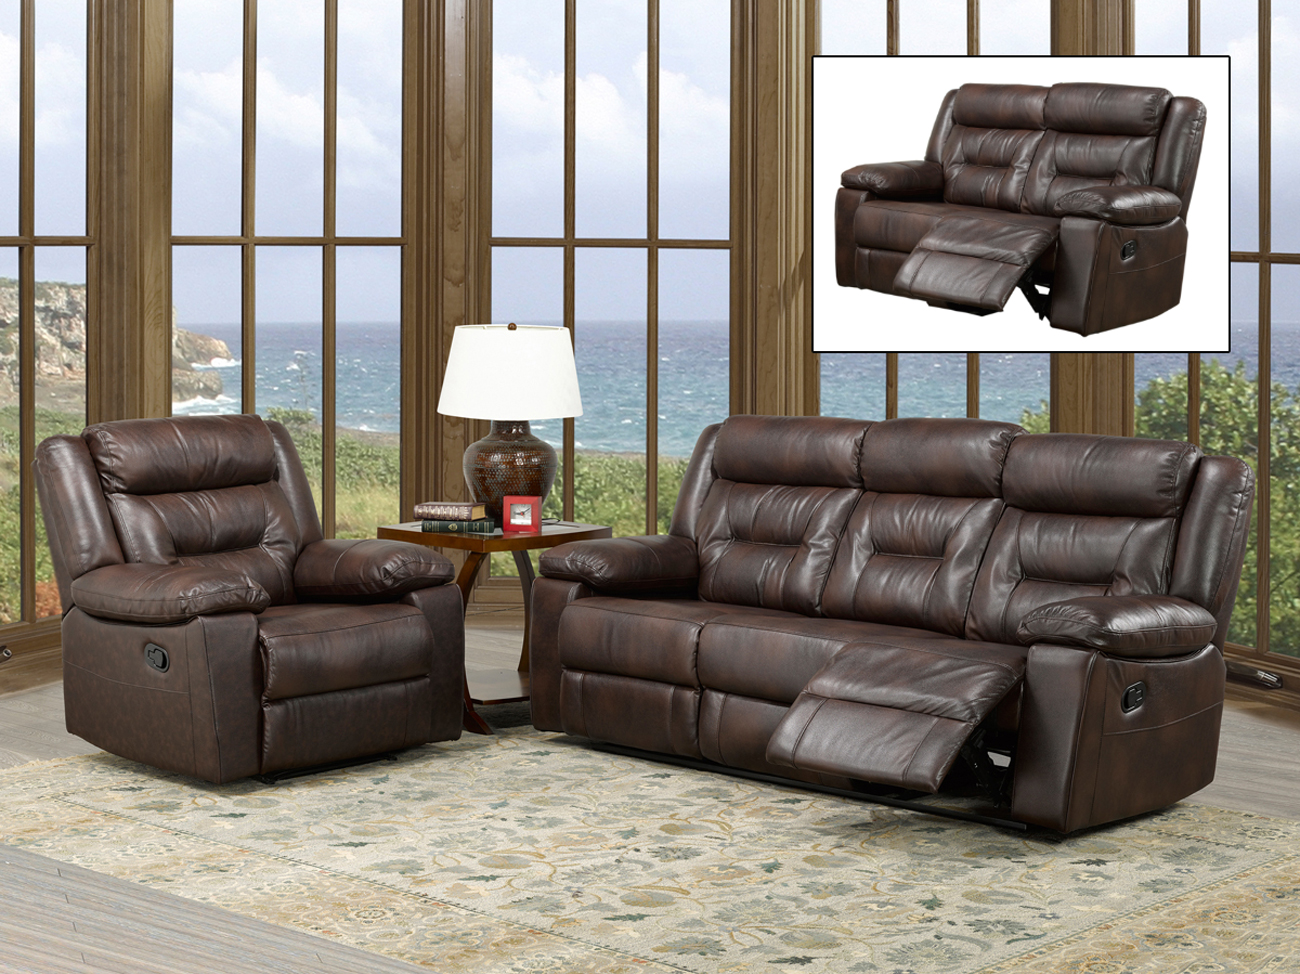 Kit of recliner set ameublement beaubien magasin de for Meuble beaubien